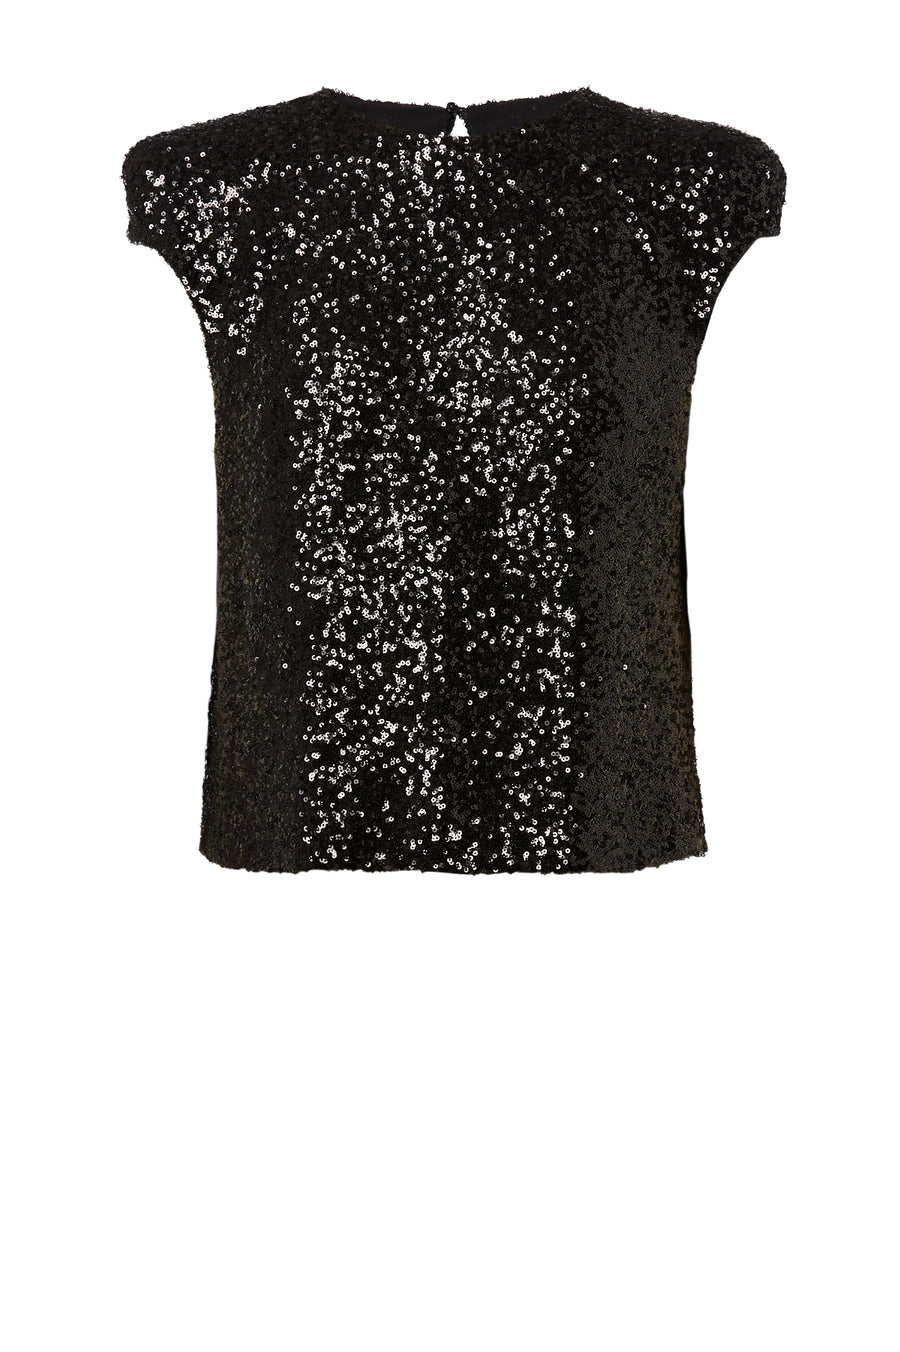 Sequin Top, broad tailored shoulder, cap sleeve, high neckline, keyhole button closure at back, color black